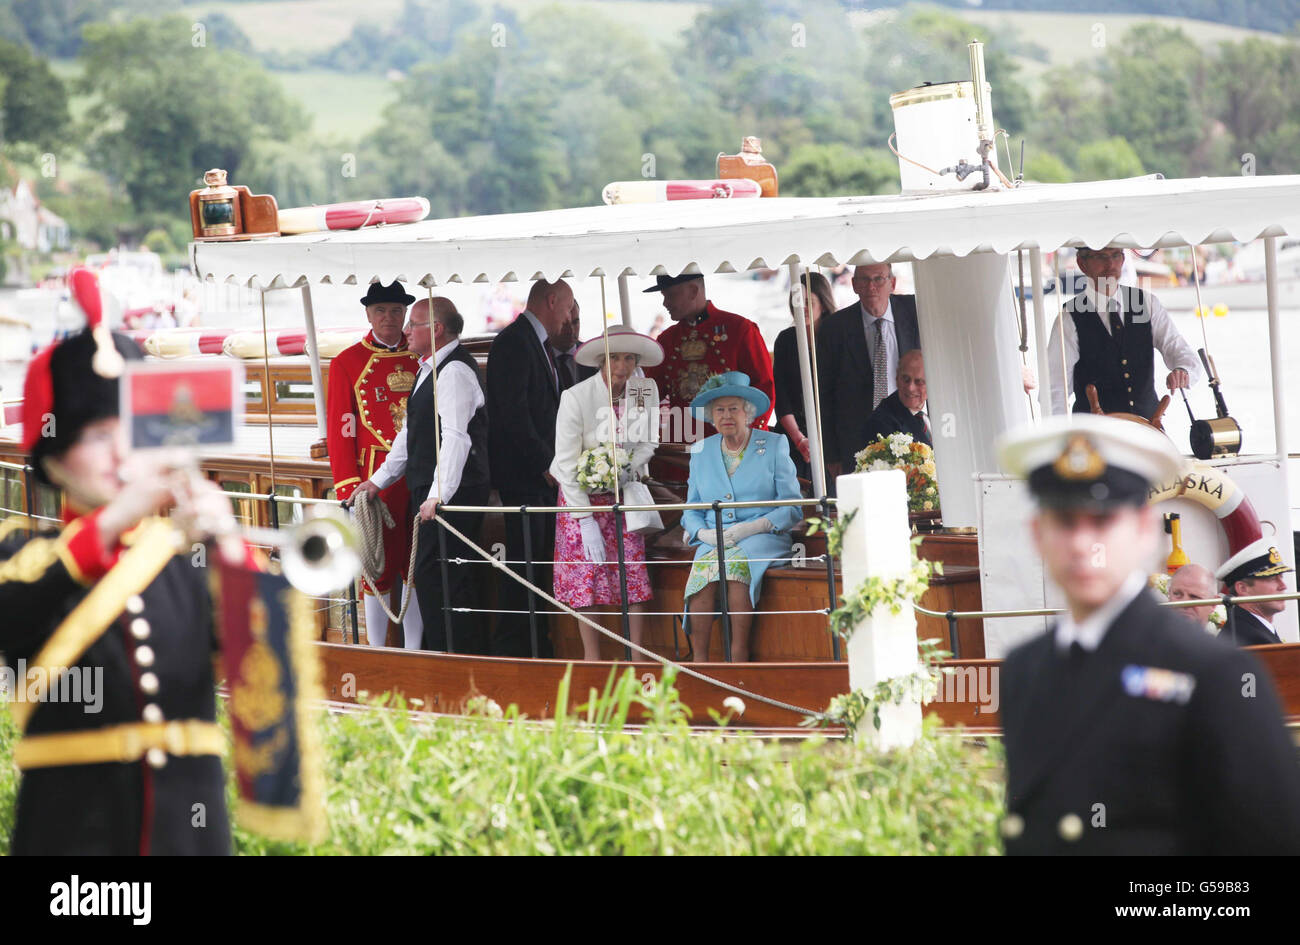 Royal visit to Henley - Stock Image